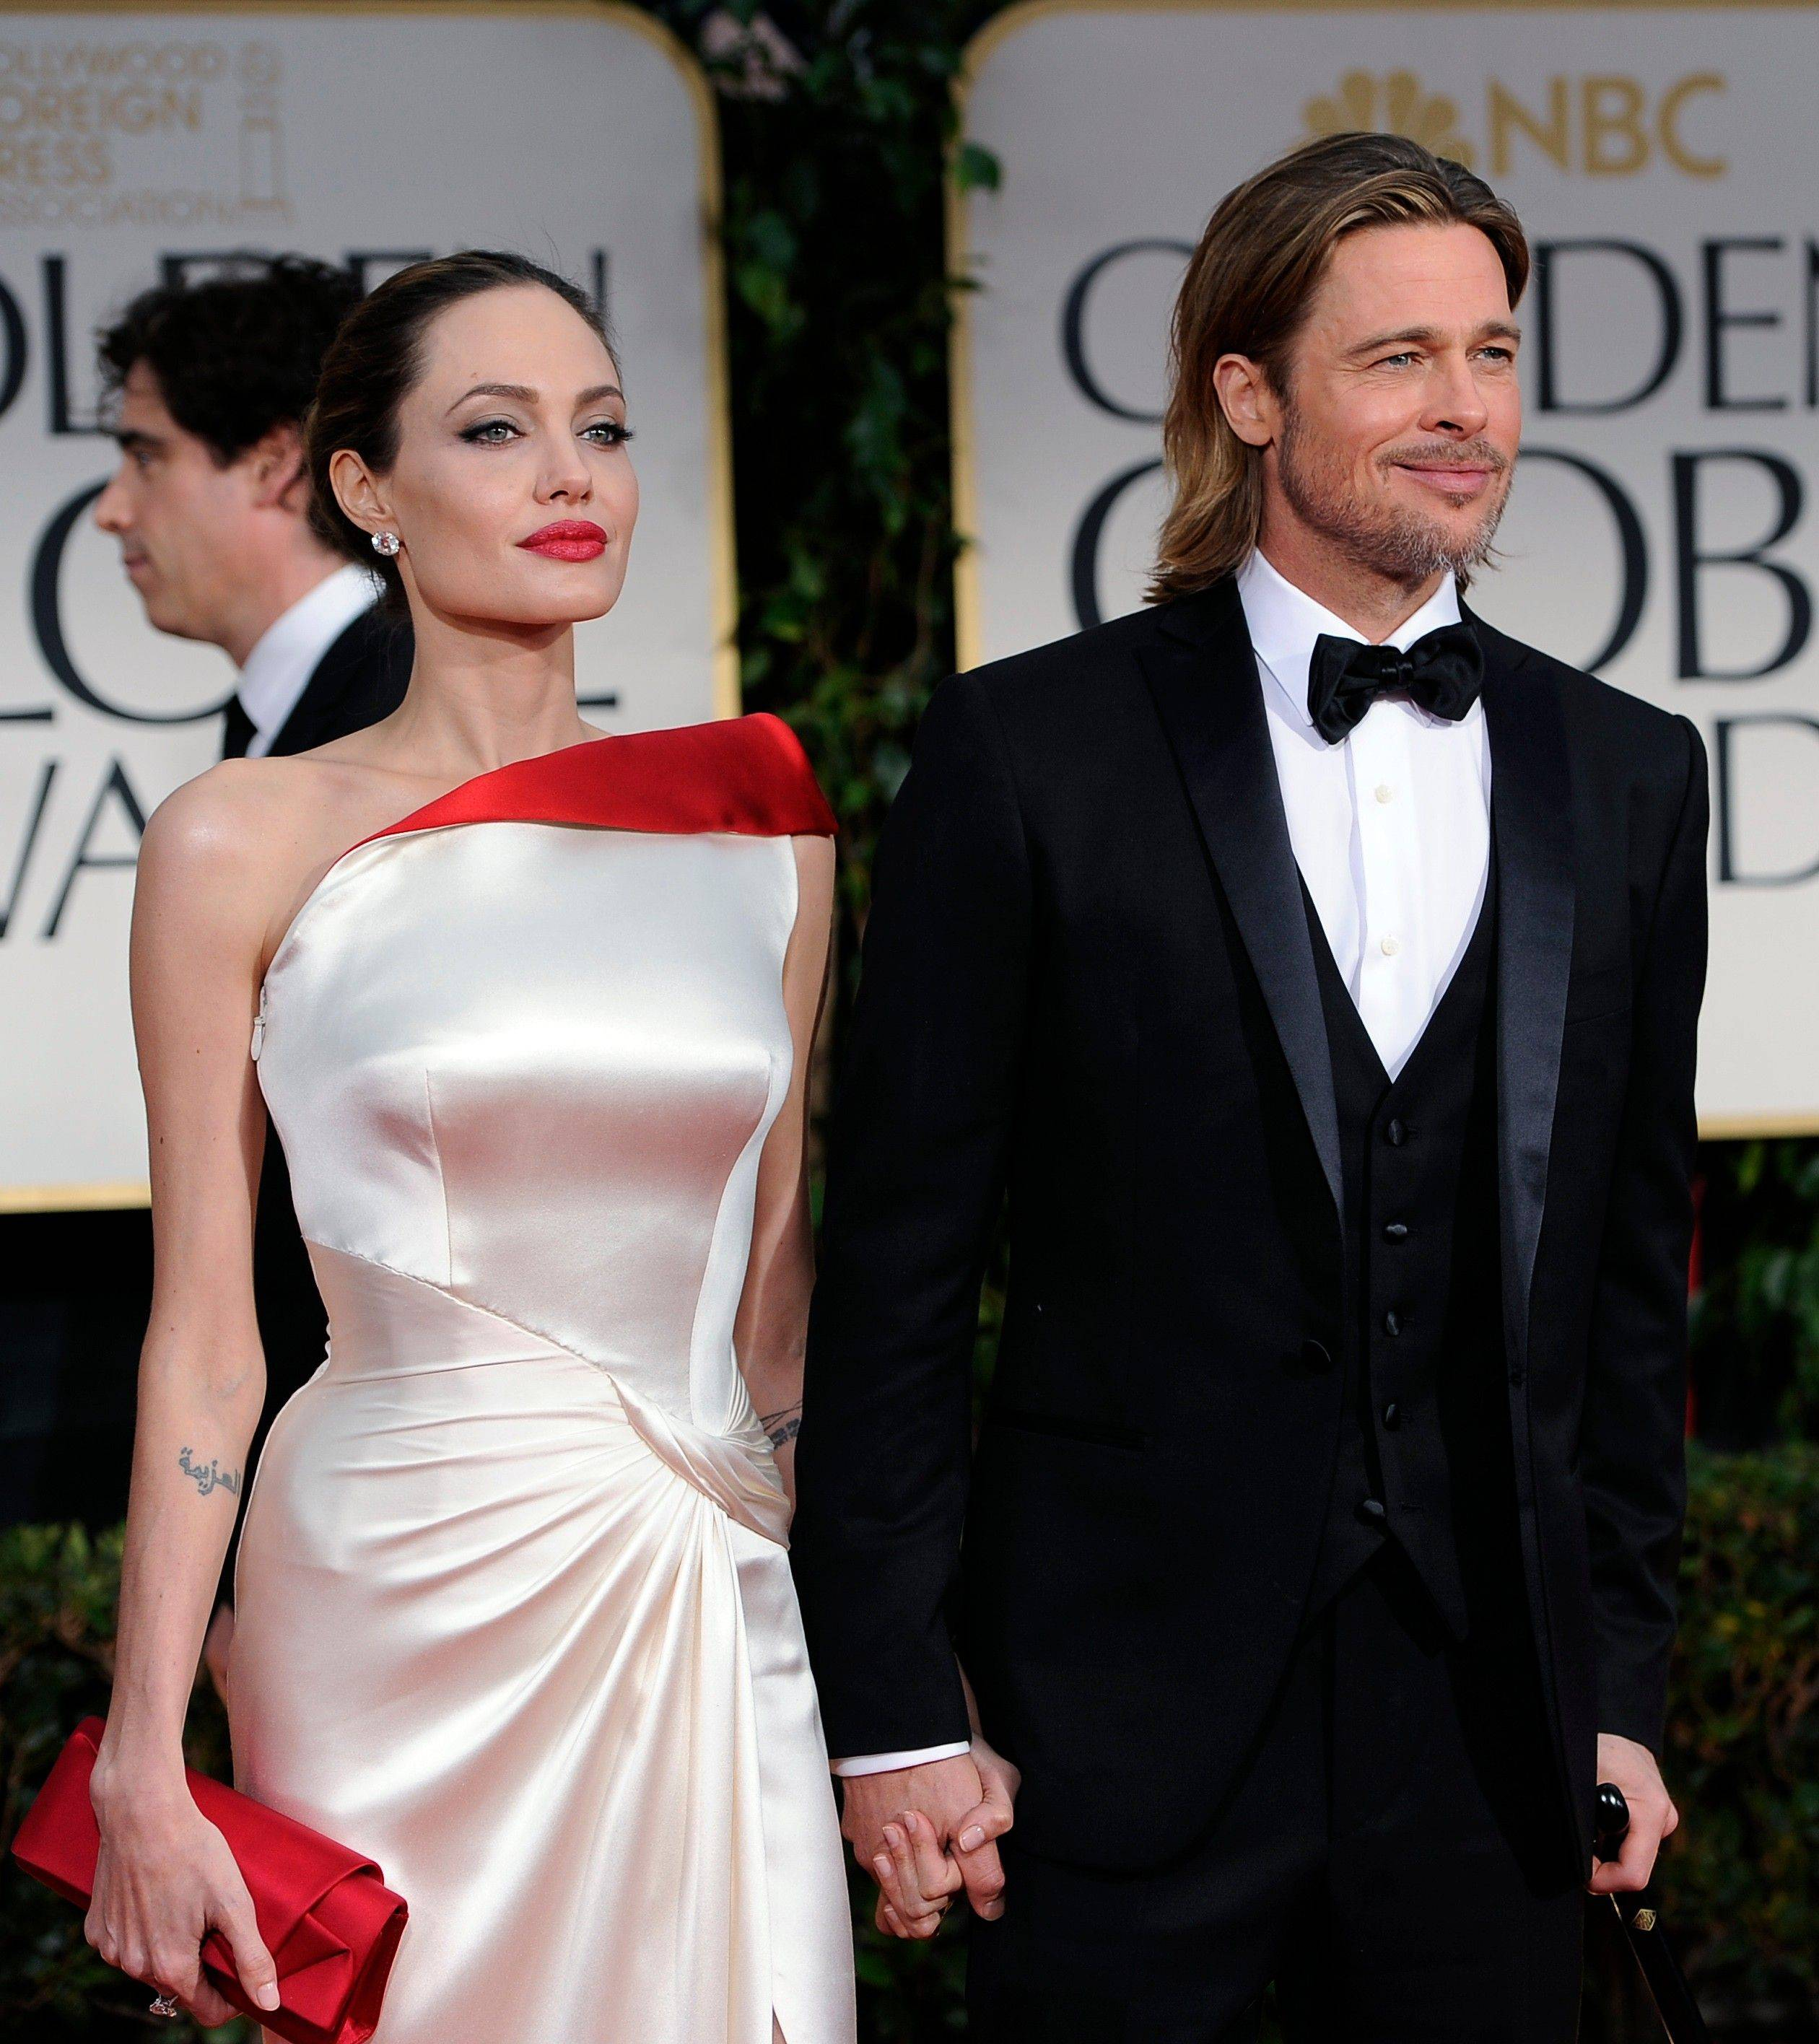 Angelina Jolie and Brad Pitt arrive at the 69th Annual Golden Globe Awards.